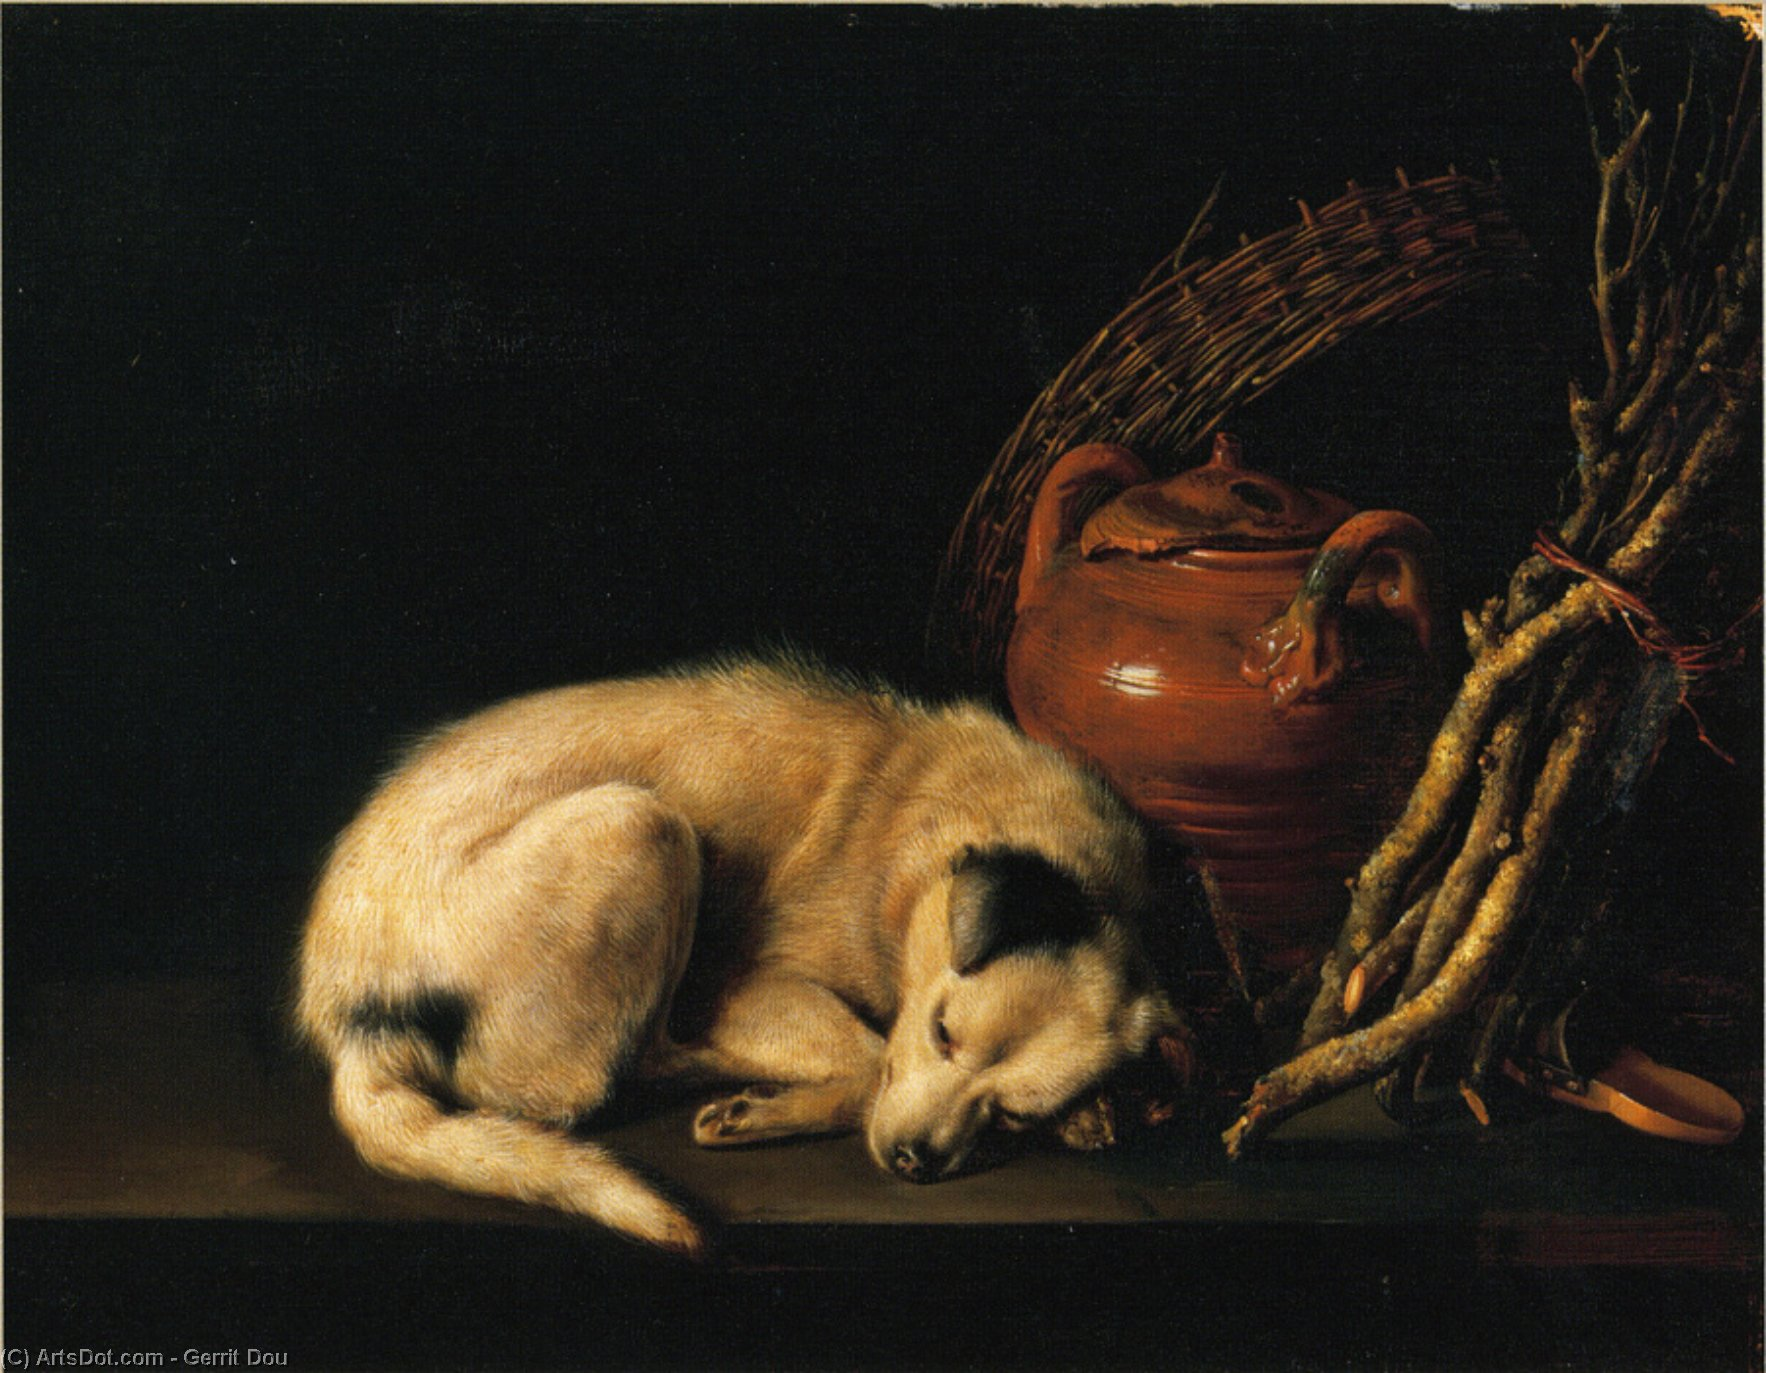 A Sleeping Dog Beside a Terracotta Jug, a Basket, and a Pile of Kindling Wood, Oil On Panel by Gerrit Dou (1613-1675, Netherlands)